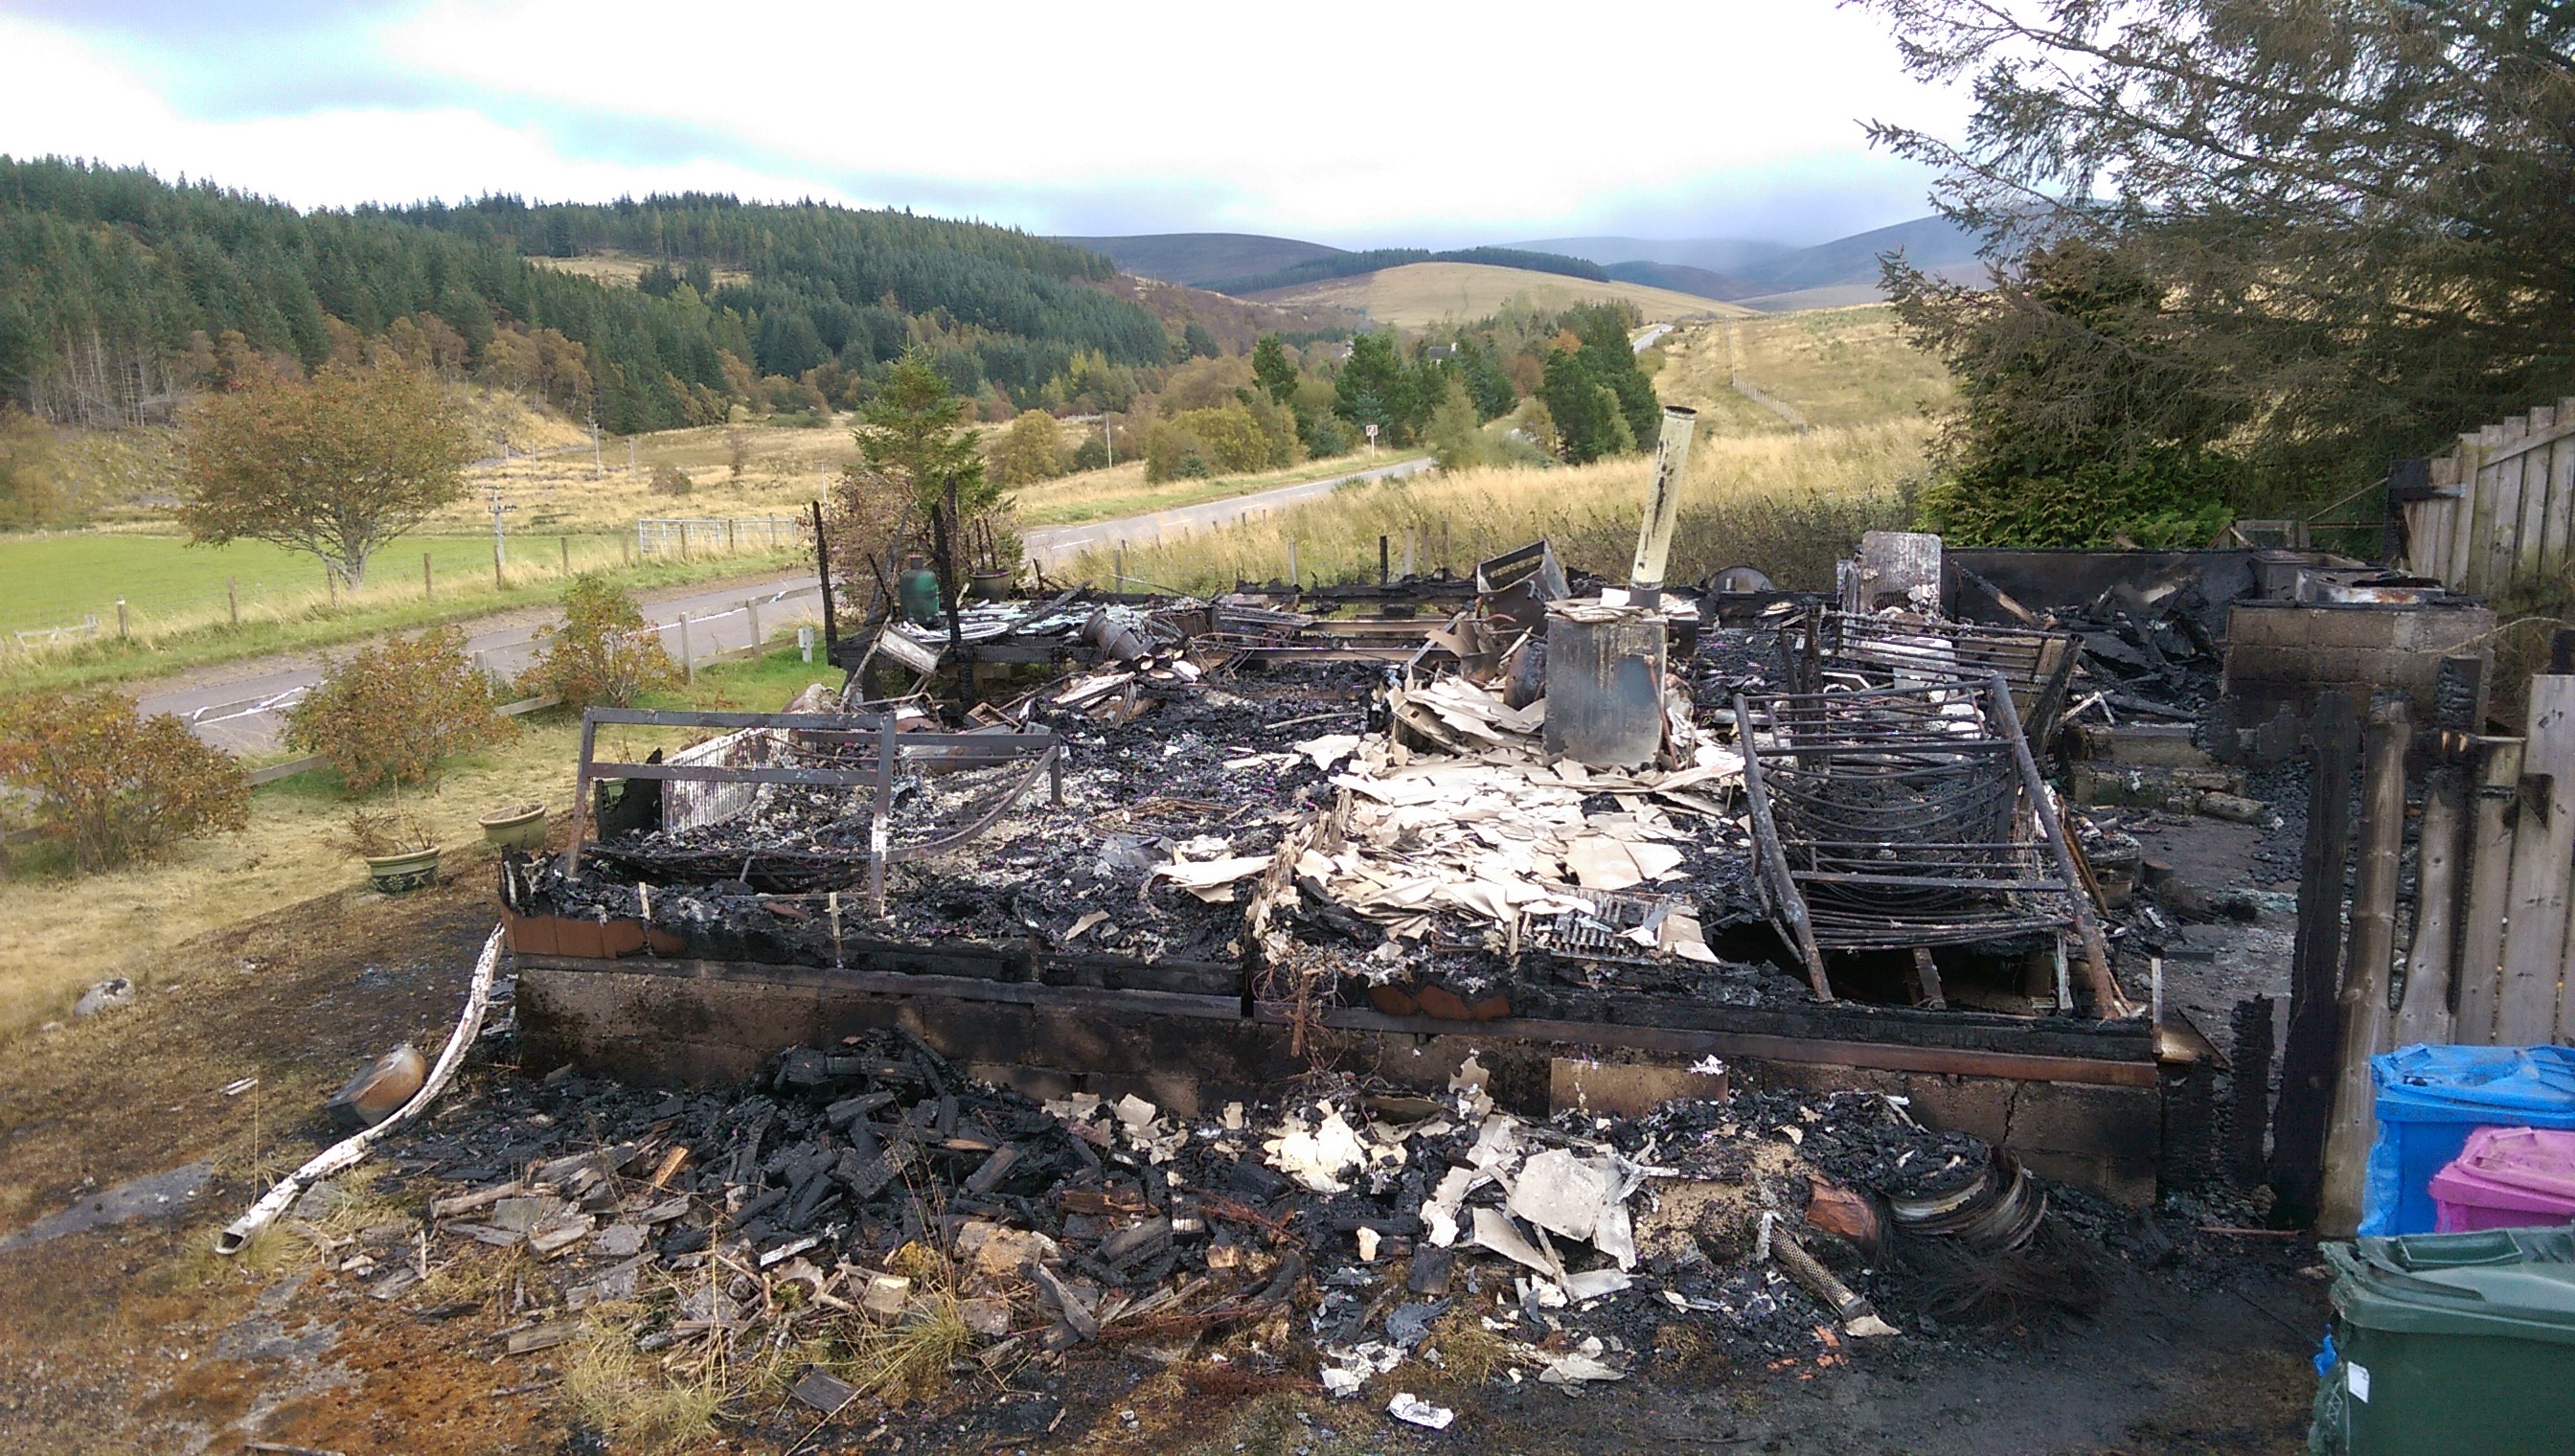 Only charred remains are left of Joanna Davidson's home near Tomintoul.